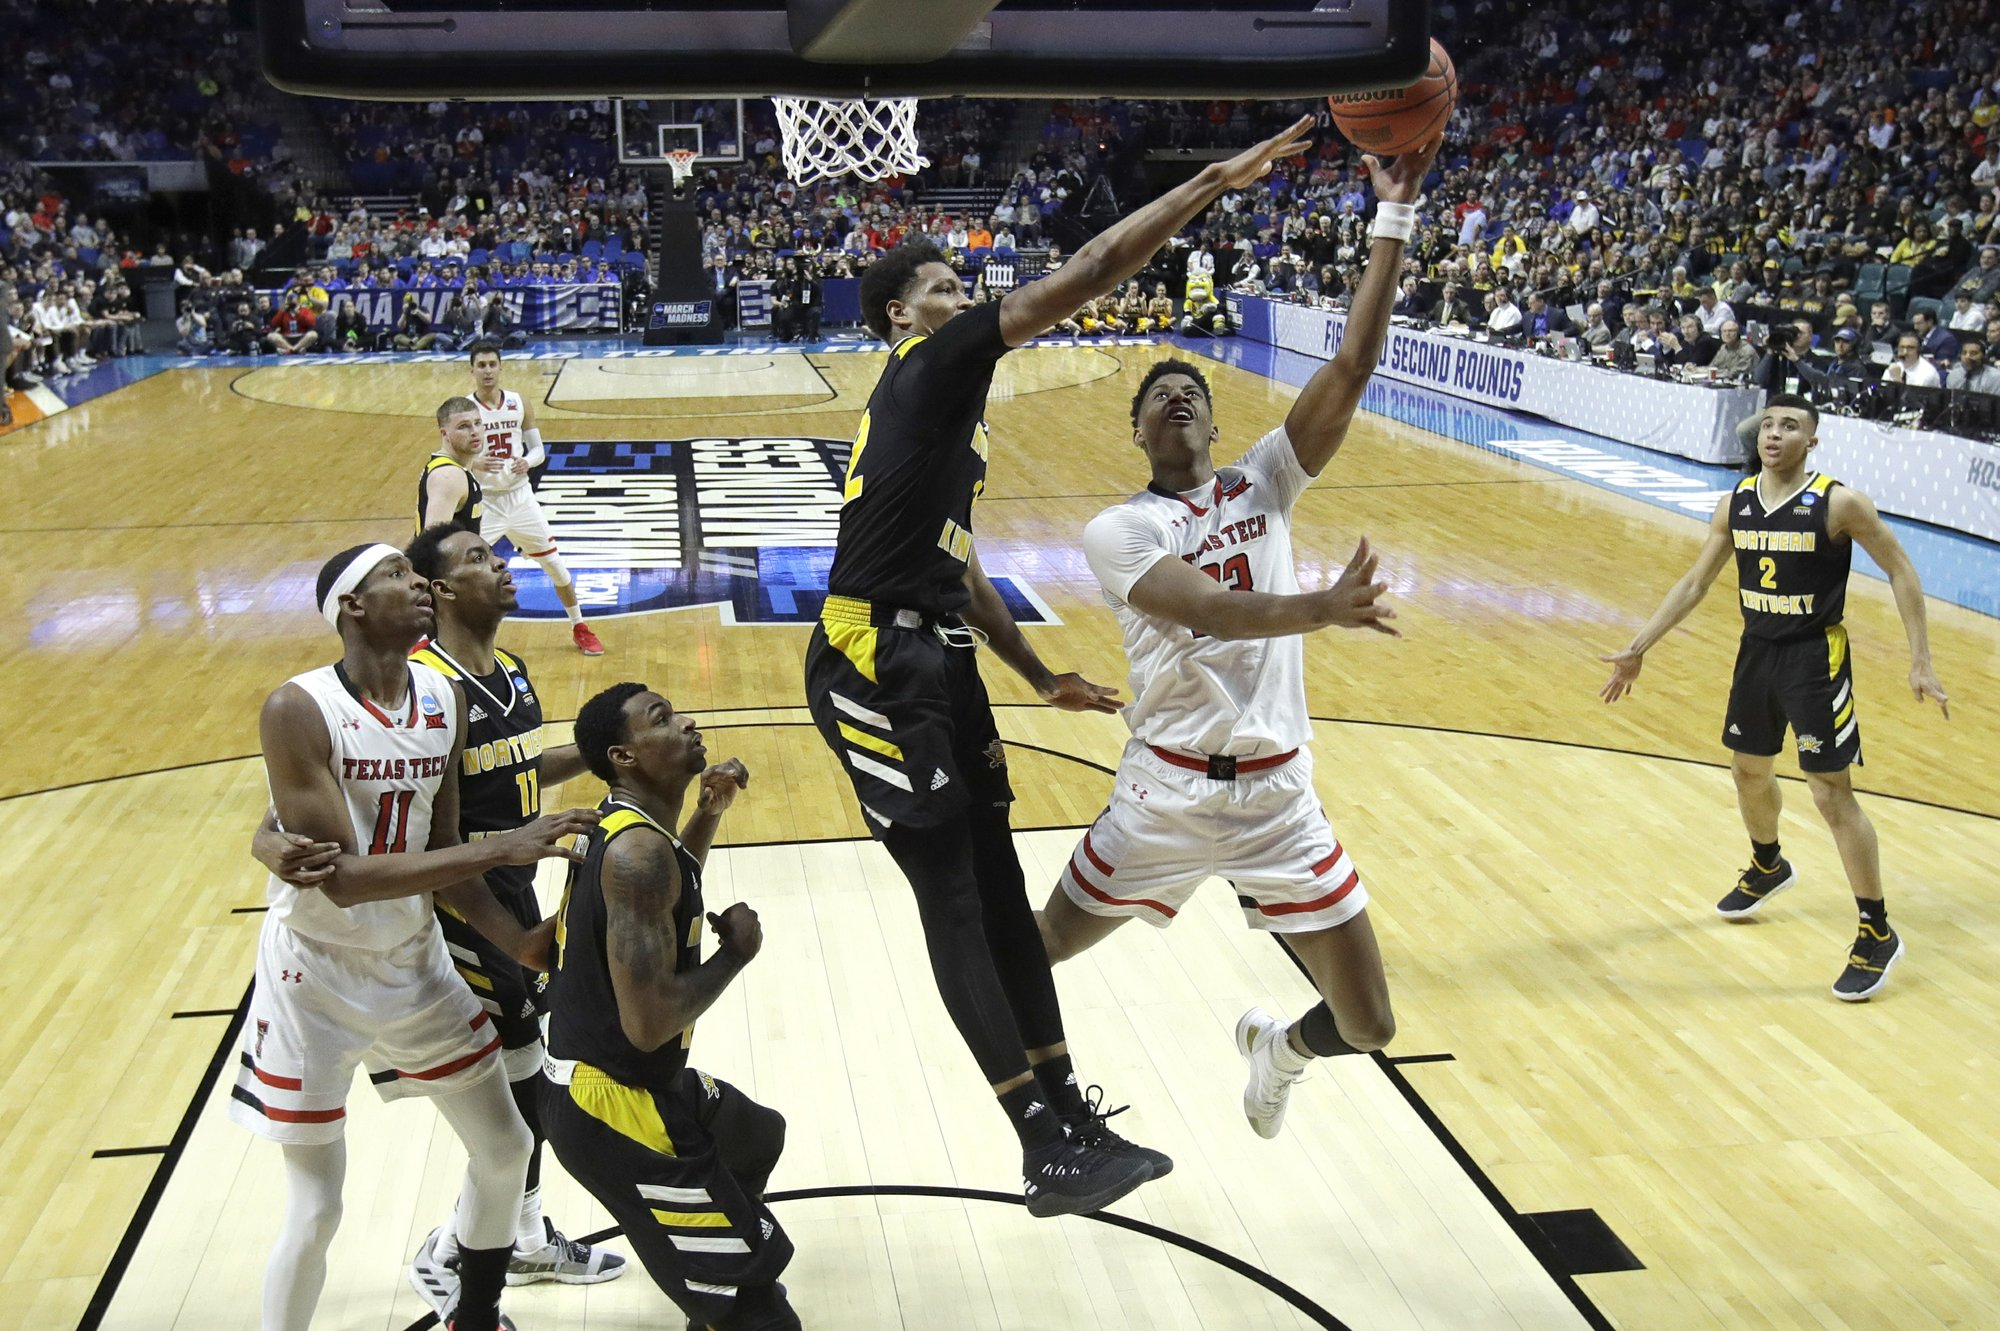 Texas Tech's Jarrett Culver puts up a shot under pressure from Northern Kentucky's Dantez Walton during the second half of a first-round men's college basketball game in the NCAA Tournament Friday, March 22, 2019, in Tulsa, Okla. Texas Tech won 72-57. (AP Photo/Charlie Riedel)